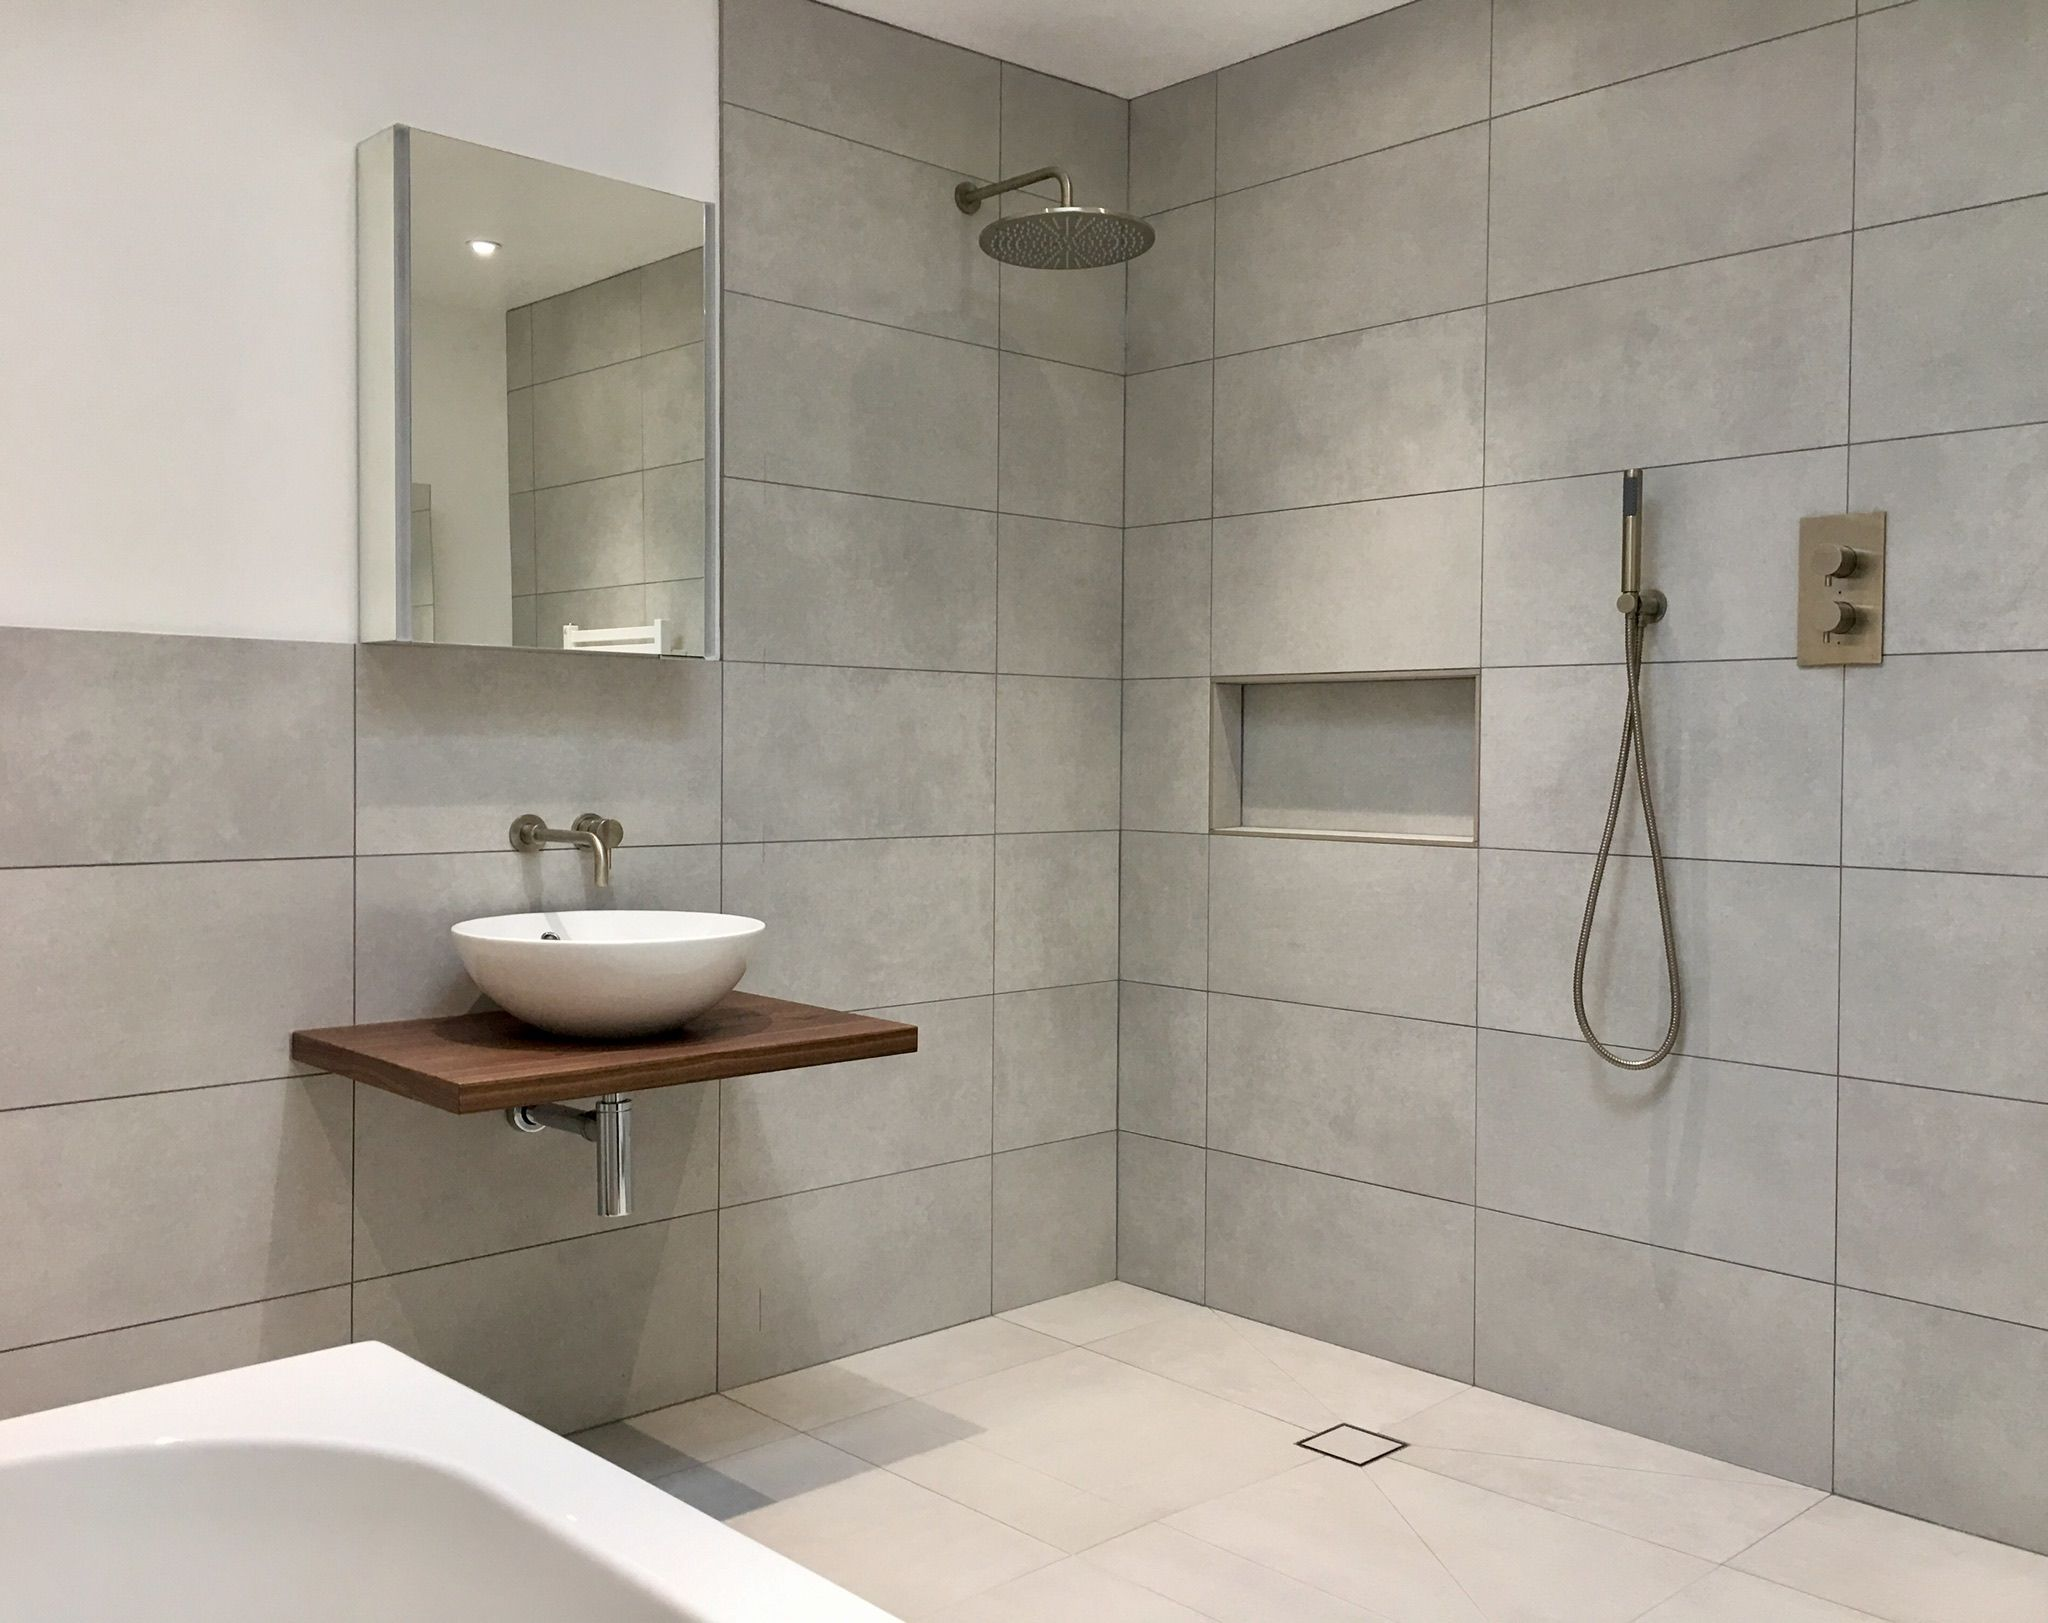 vessel sink and built in recessed shower shelf in